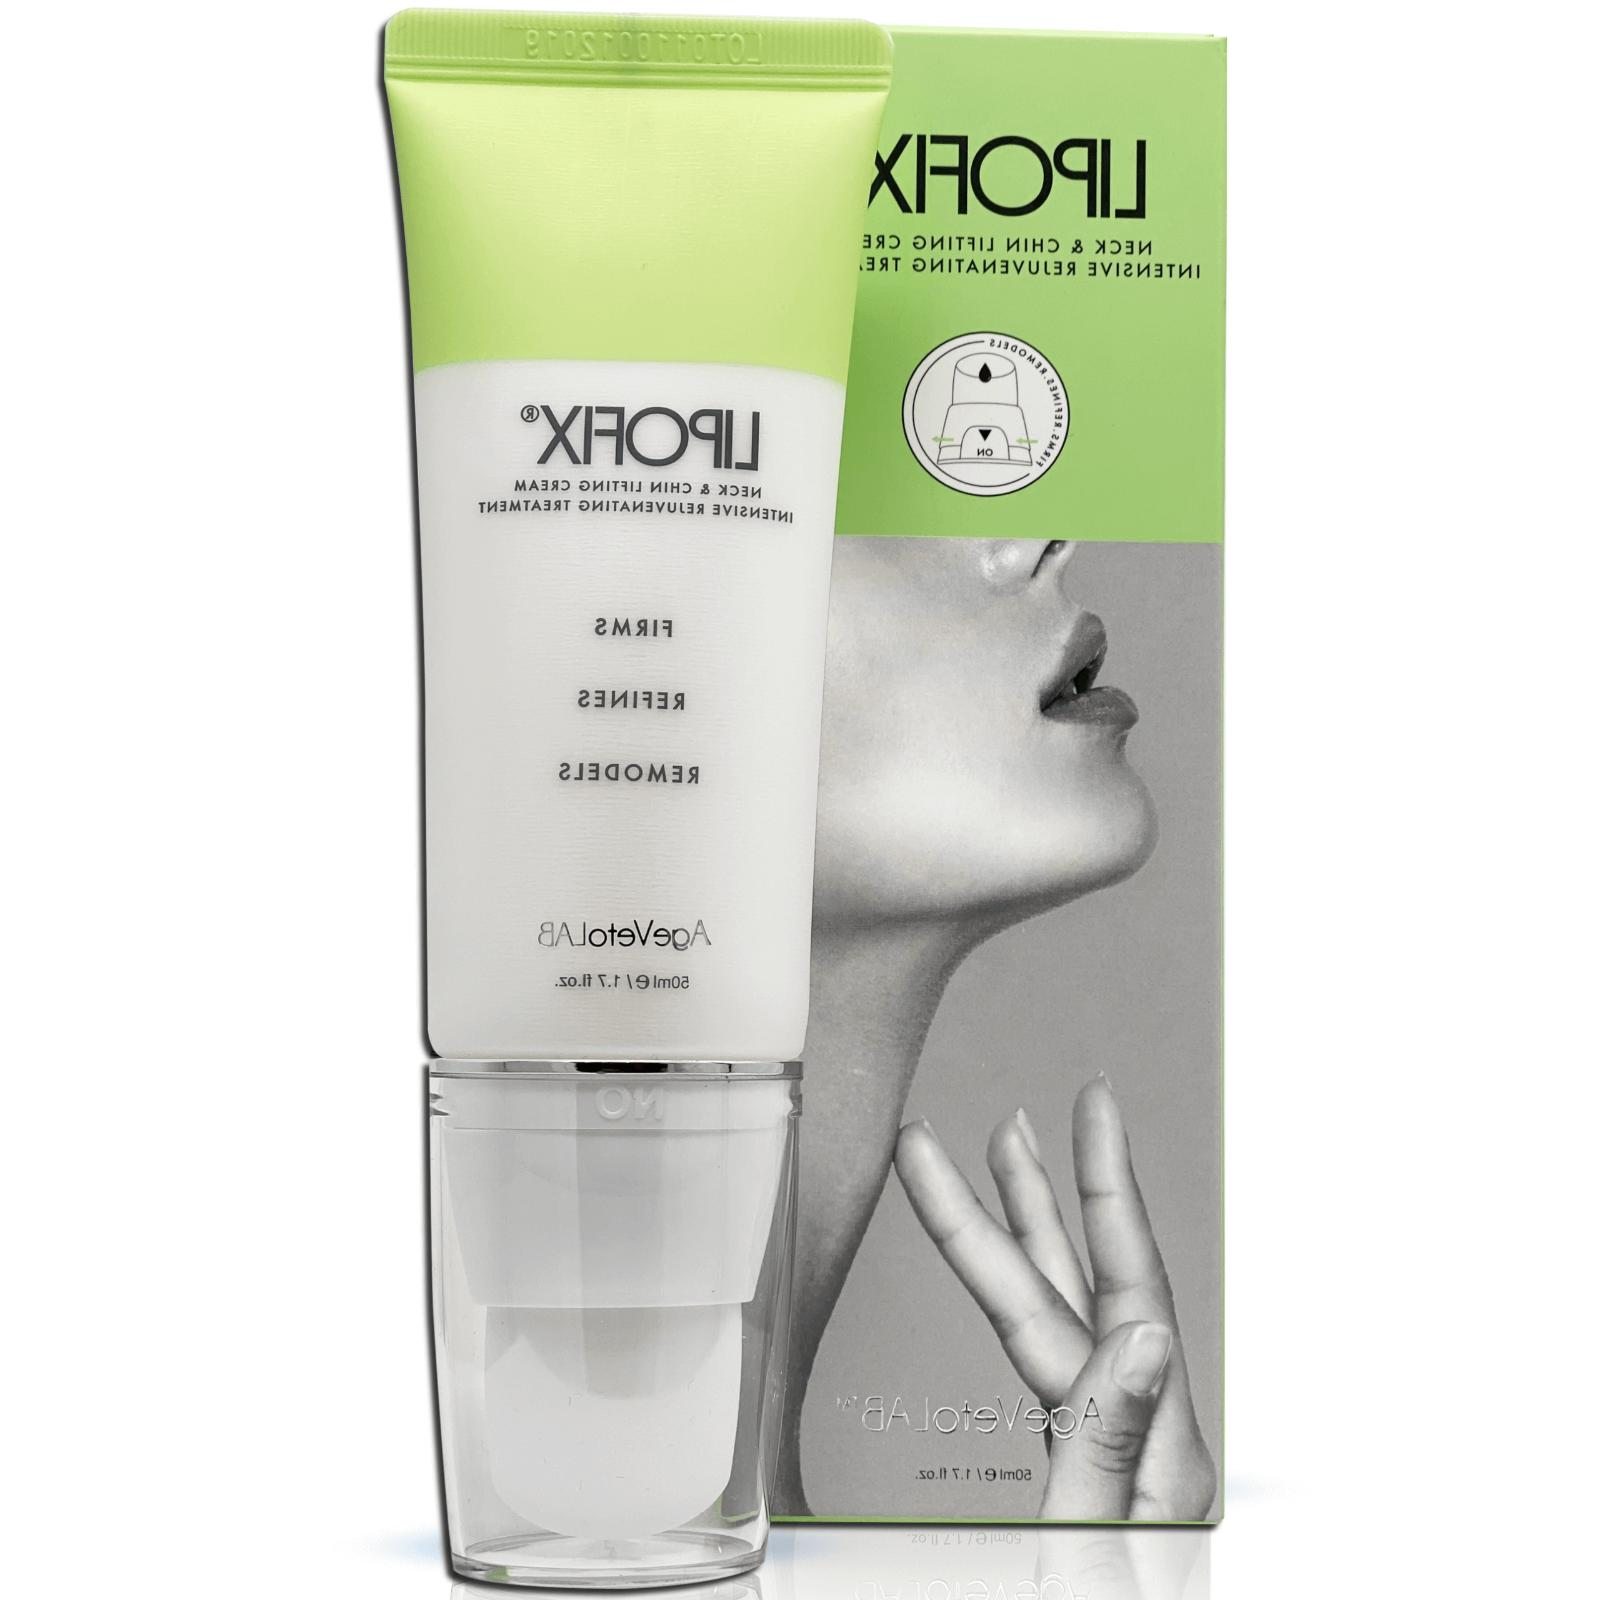 neck firming cream tones and firms sagging